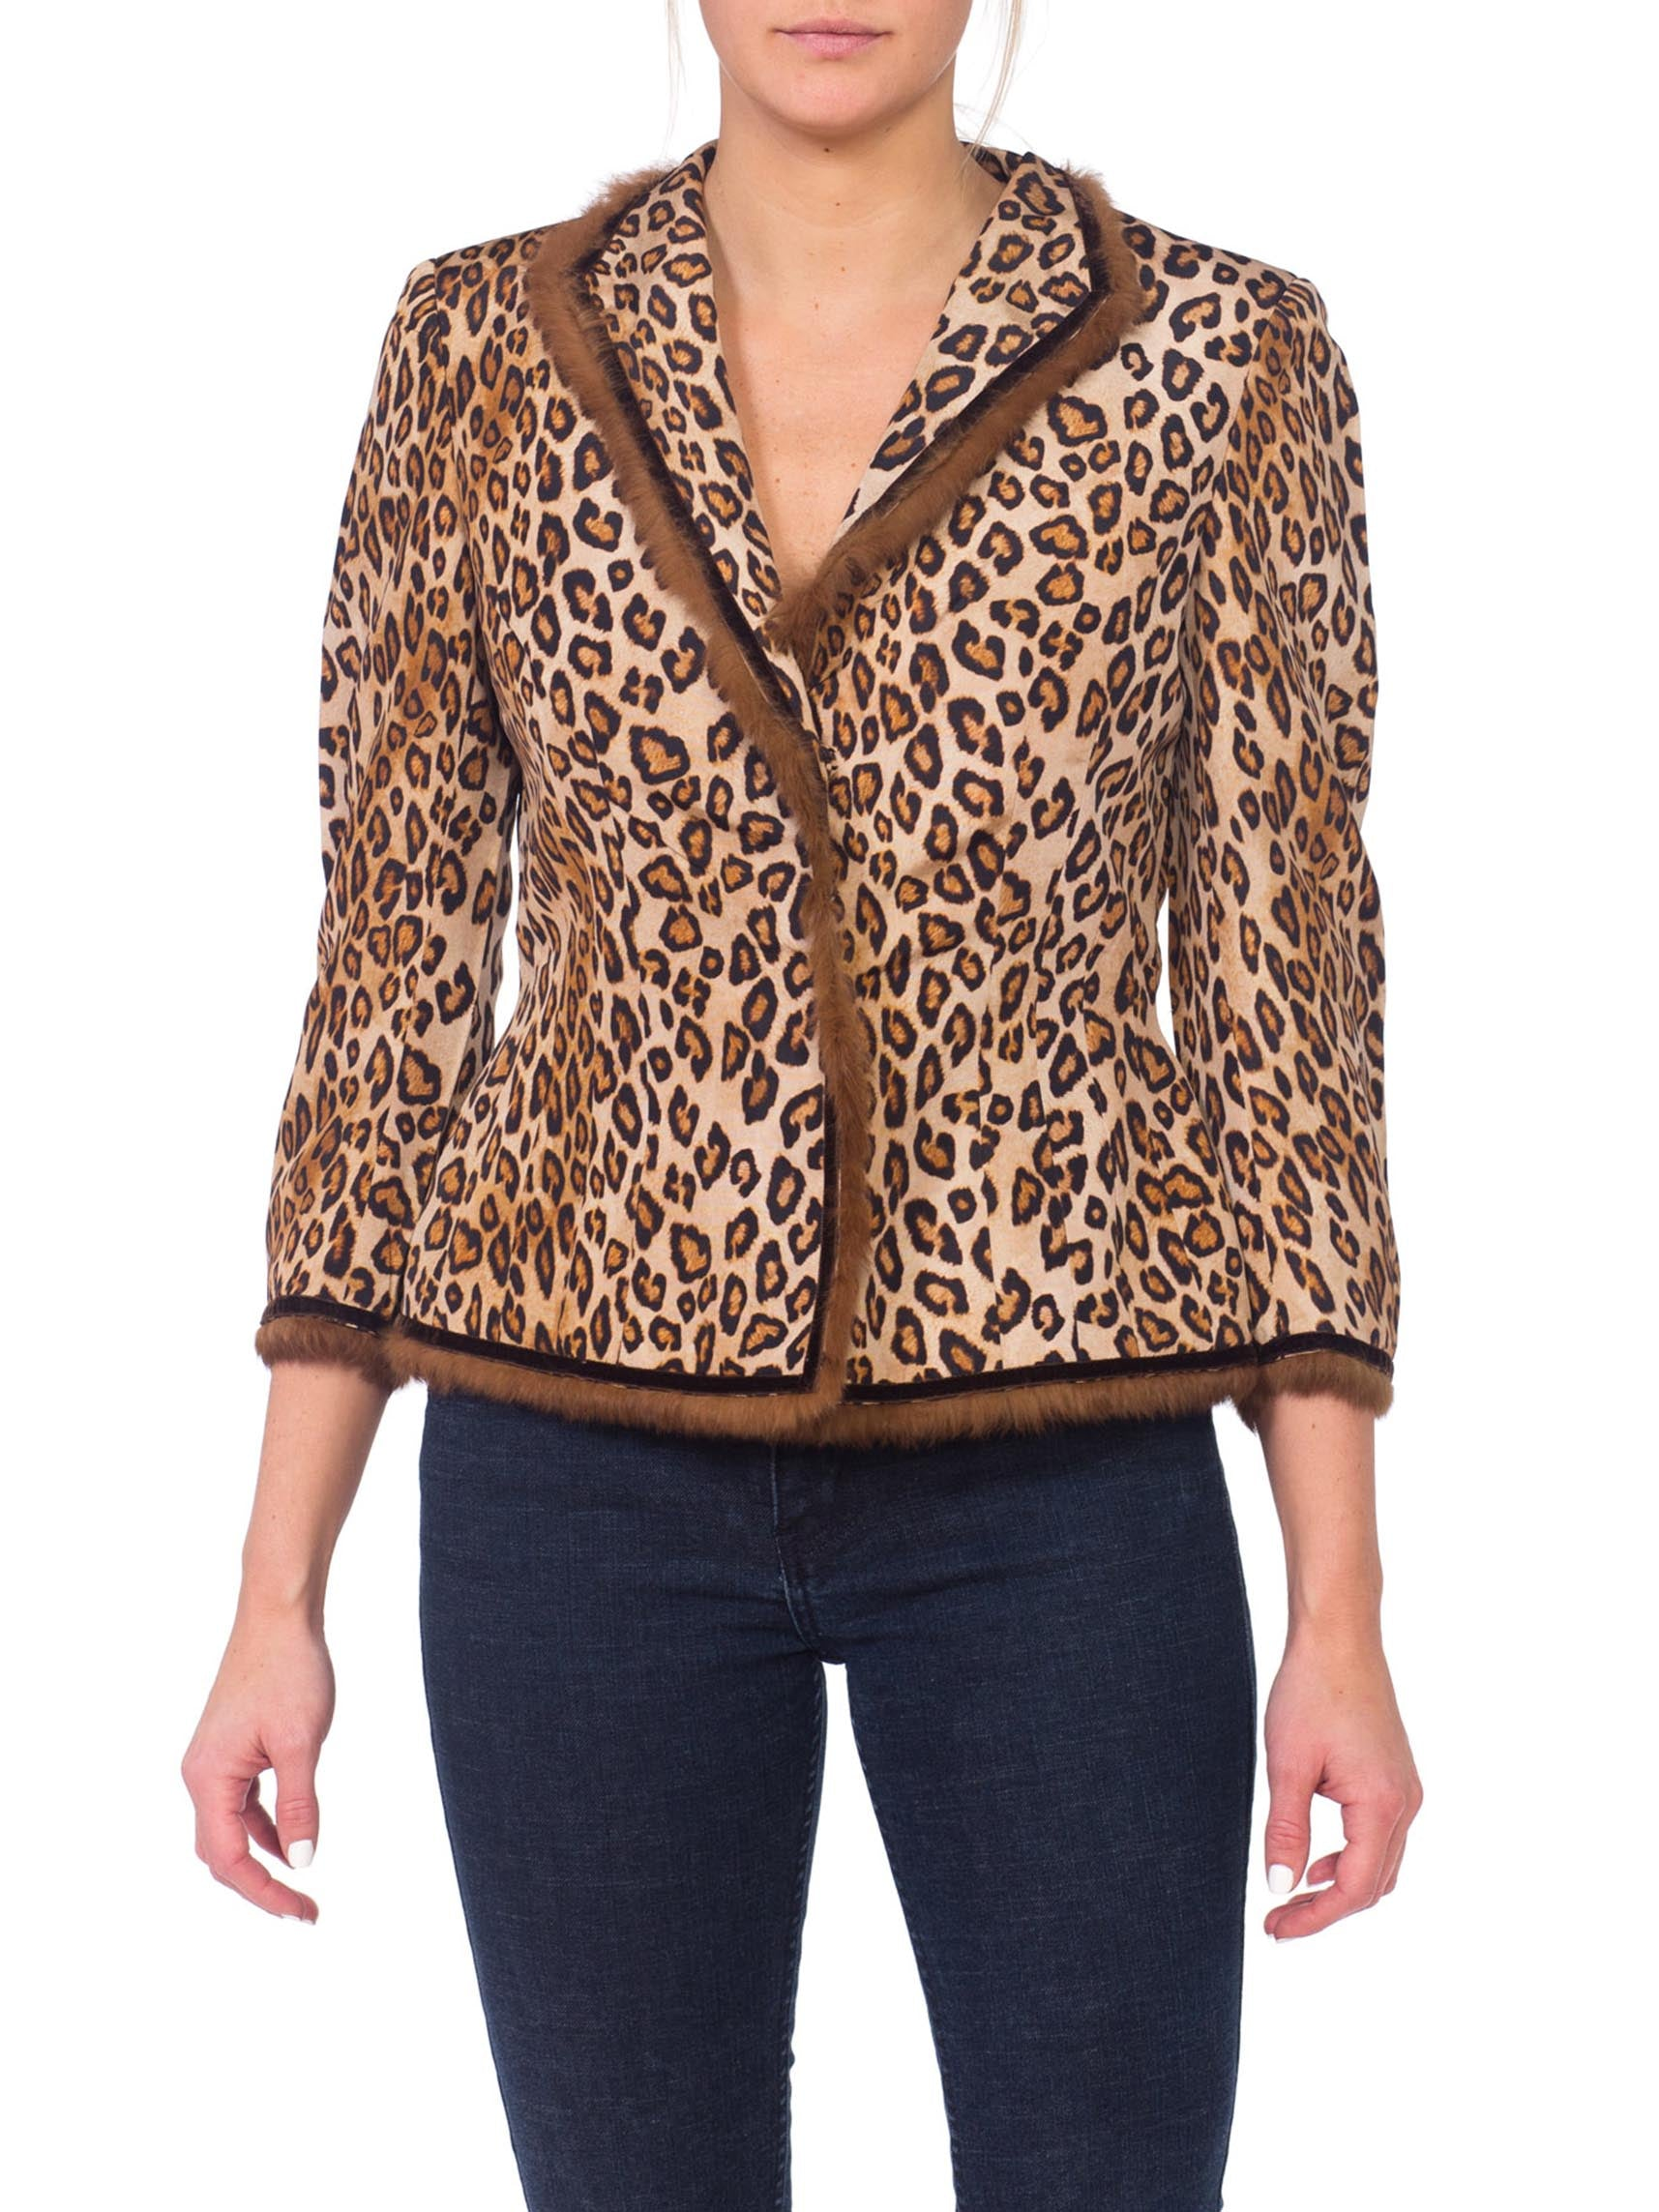 Alexander McQueen Silk Leopard Jacket with Fur & Velvet Trim